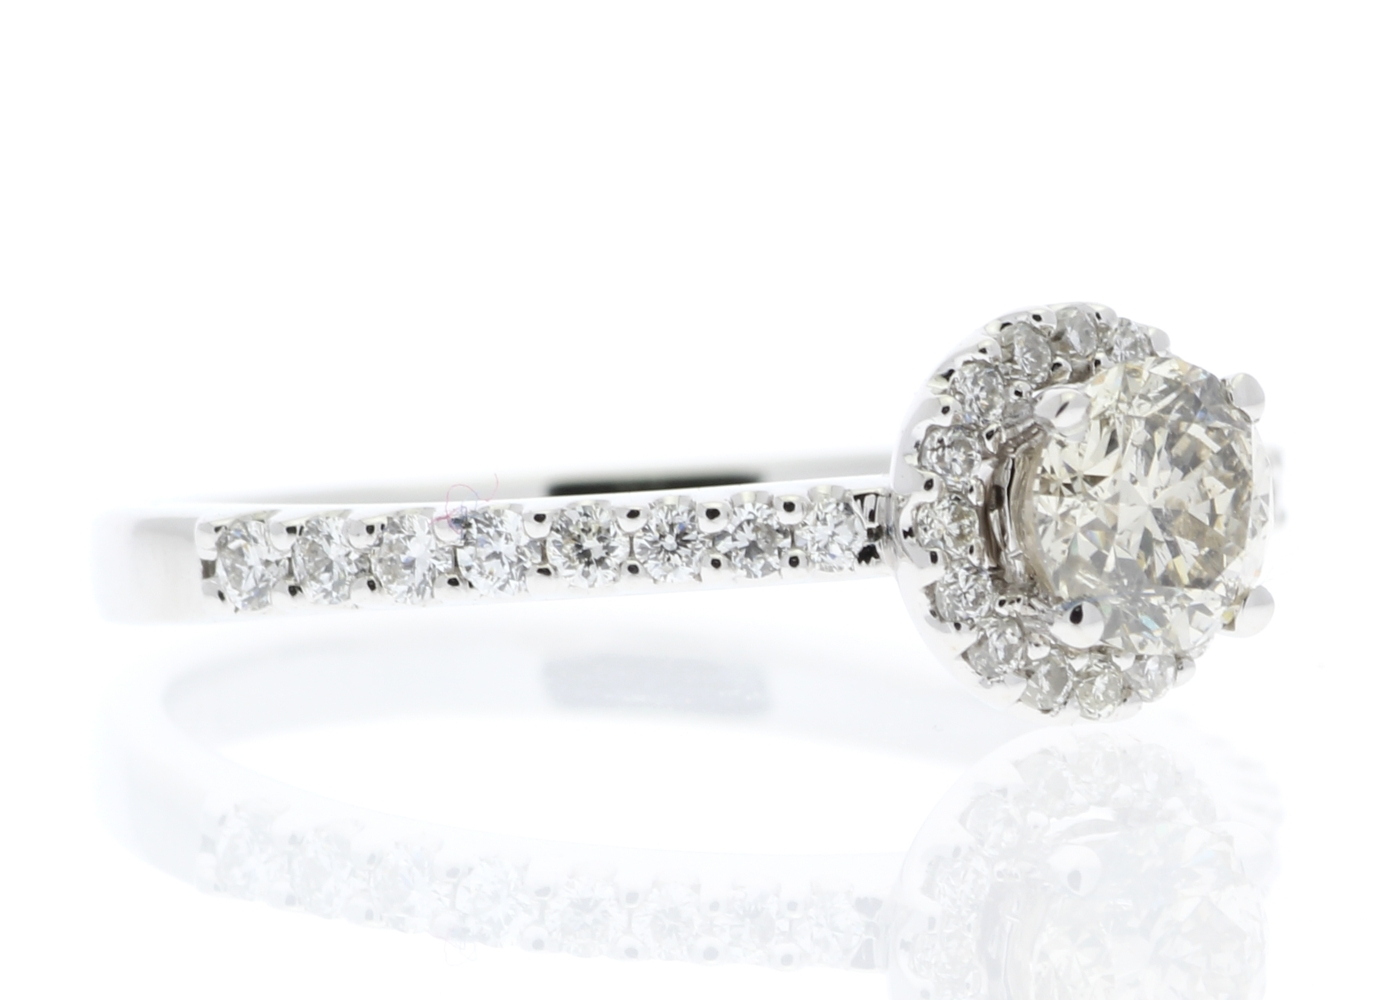 Lot 20 - 18ct White Gold Single Stone Halo Set With Stone Set Shoulders Diamond Ring (0.25) 0.52 Carats